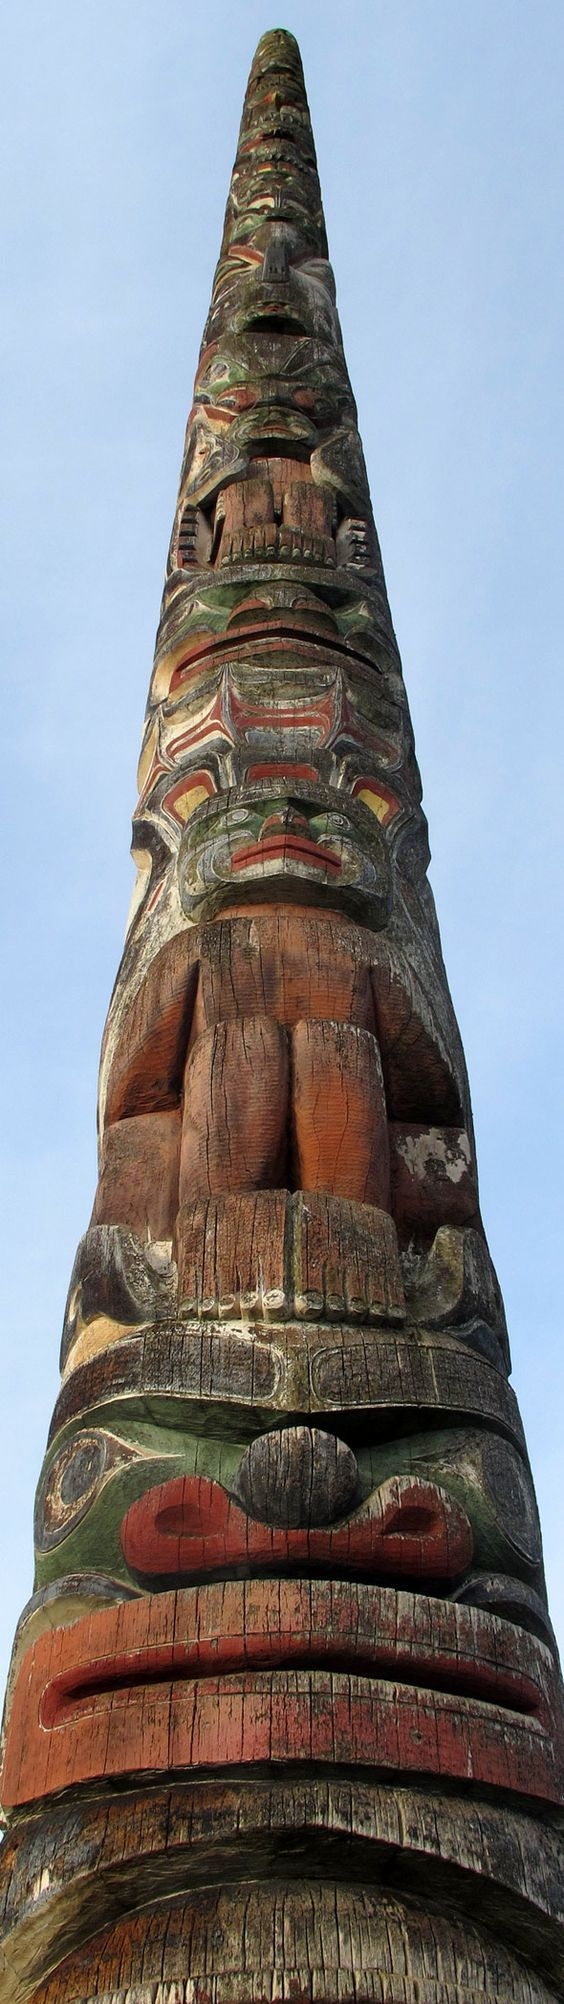 Totem Pole in #Vancouver, BC, Canada. #Travel #Totem @travelfoxcom #Canada